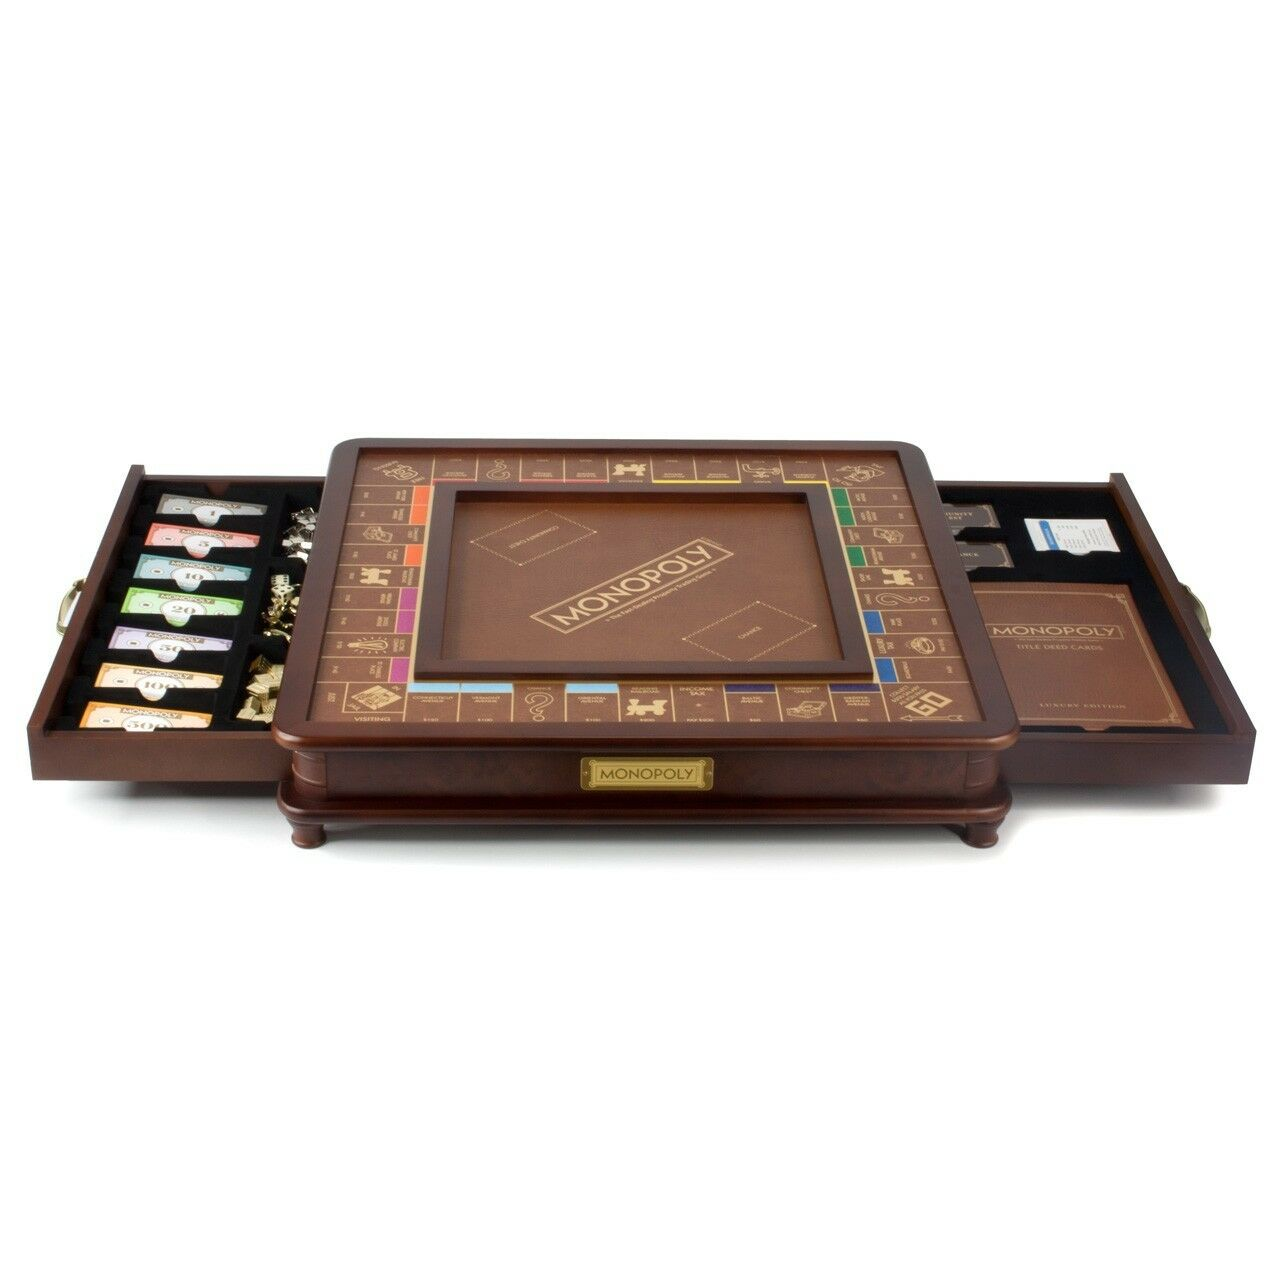 Monopoly Luxury Wooden Wooden Wooden Edition with Wood Game Board New Premium Collectible d86cc7